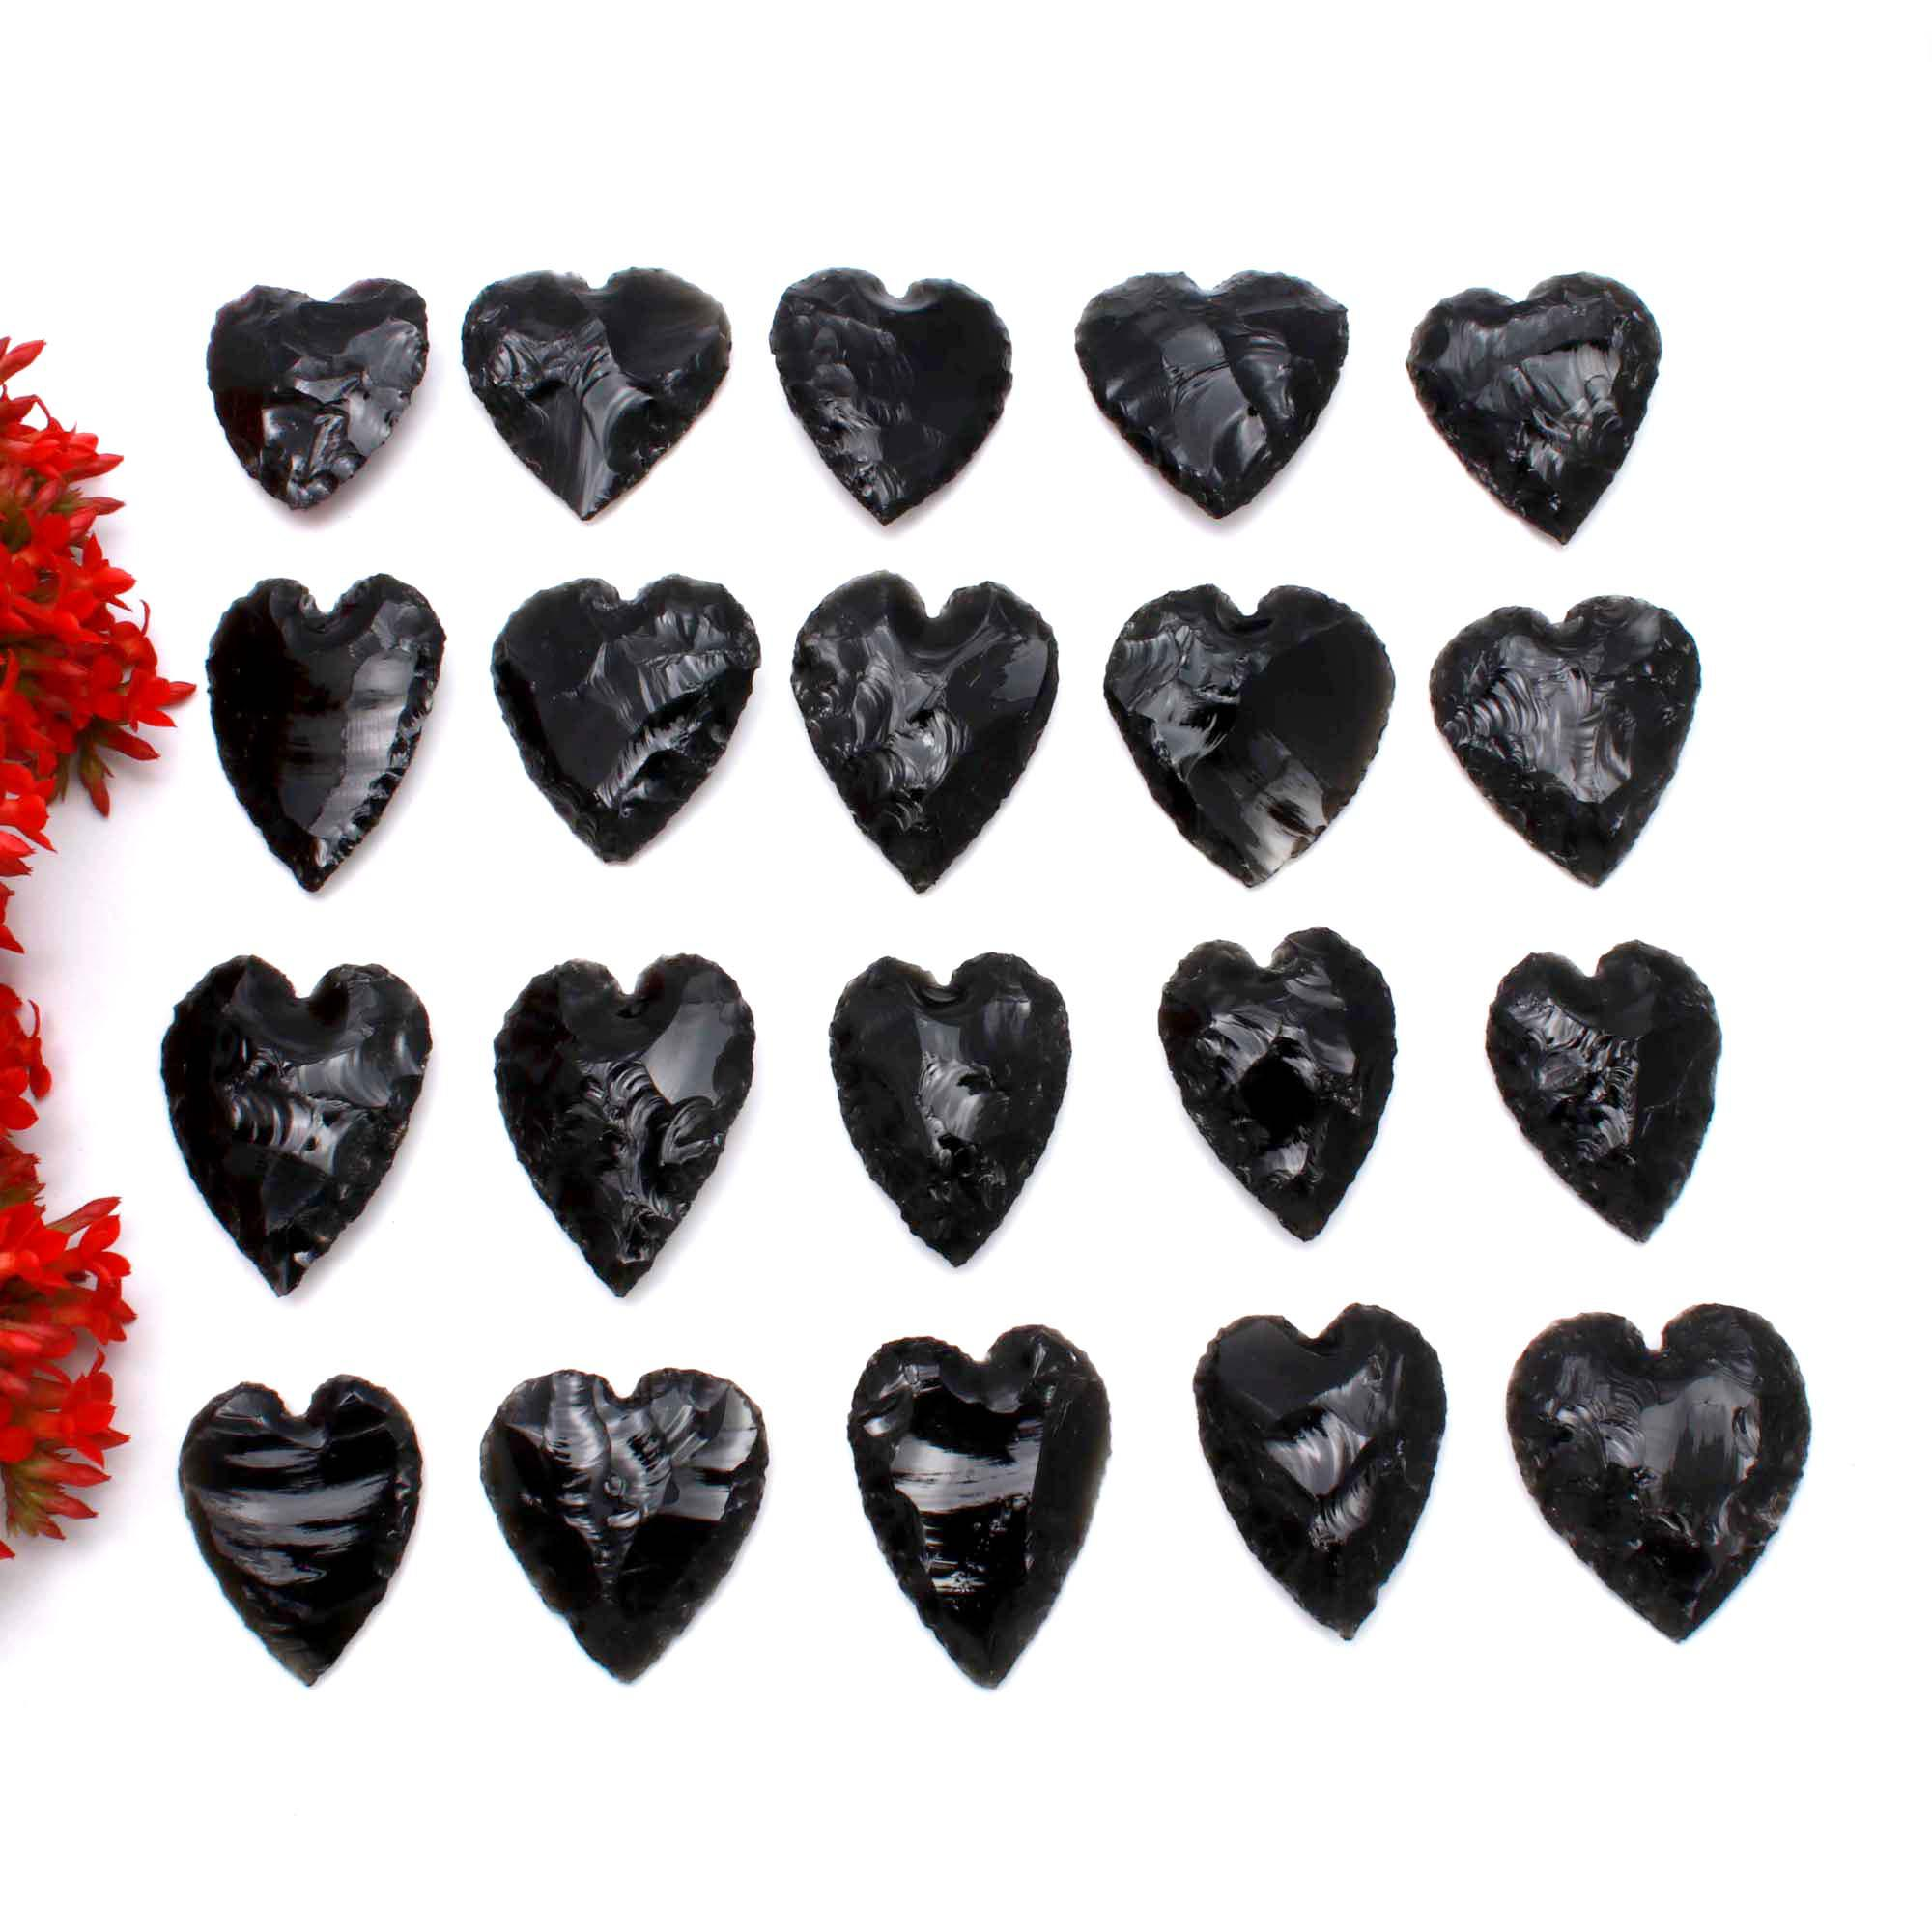 Black Obsidian Heart Carving